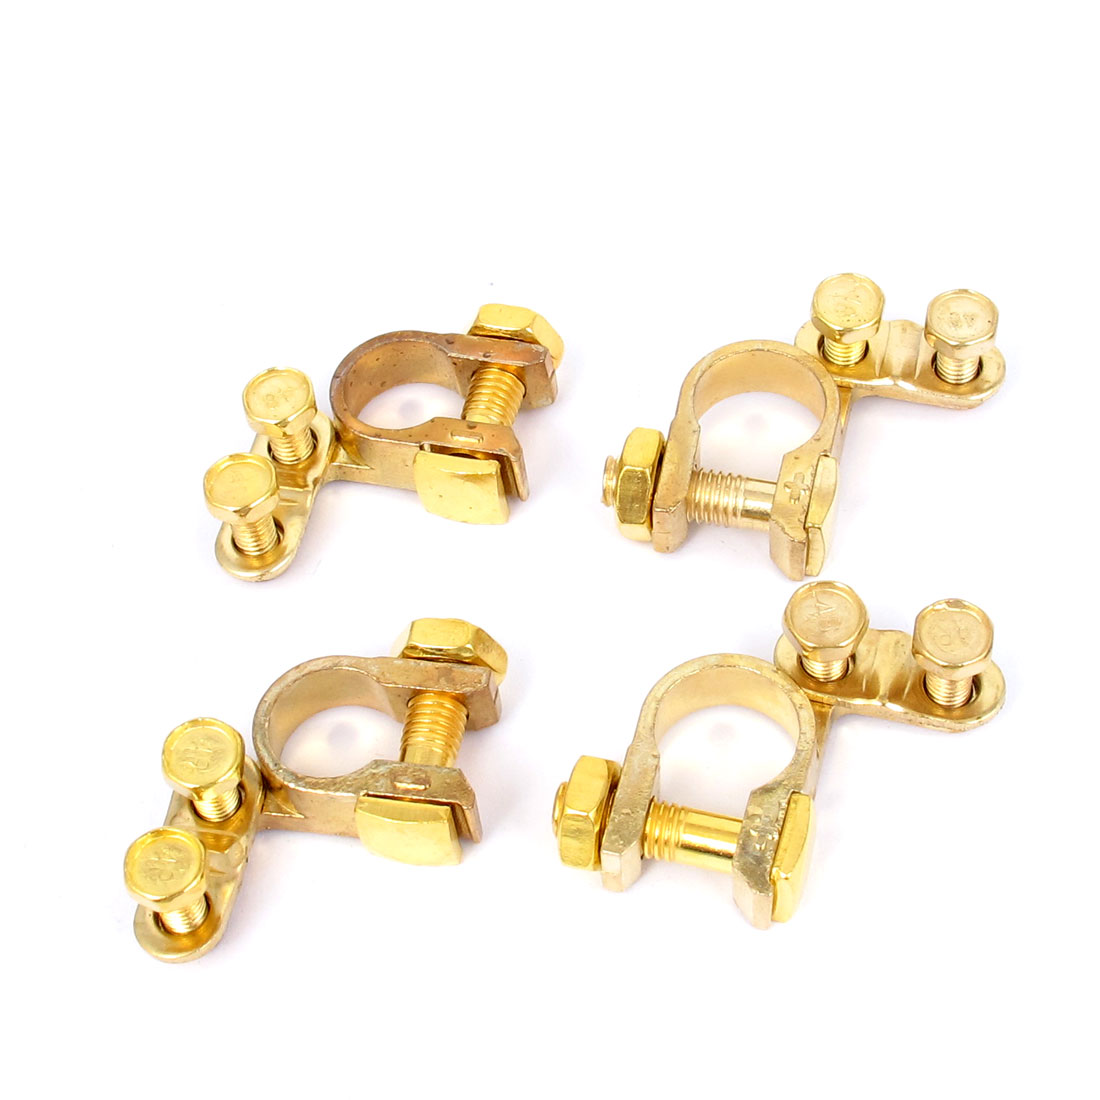 Replacement Auto Car Battery Terminal Clamp Clips Brass Connector 4Pcs